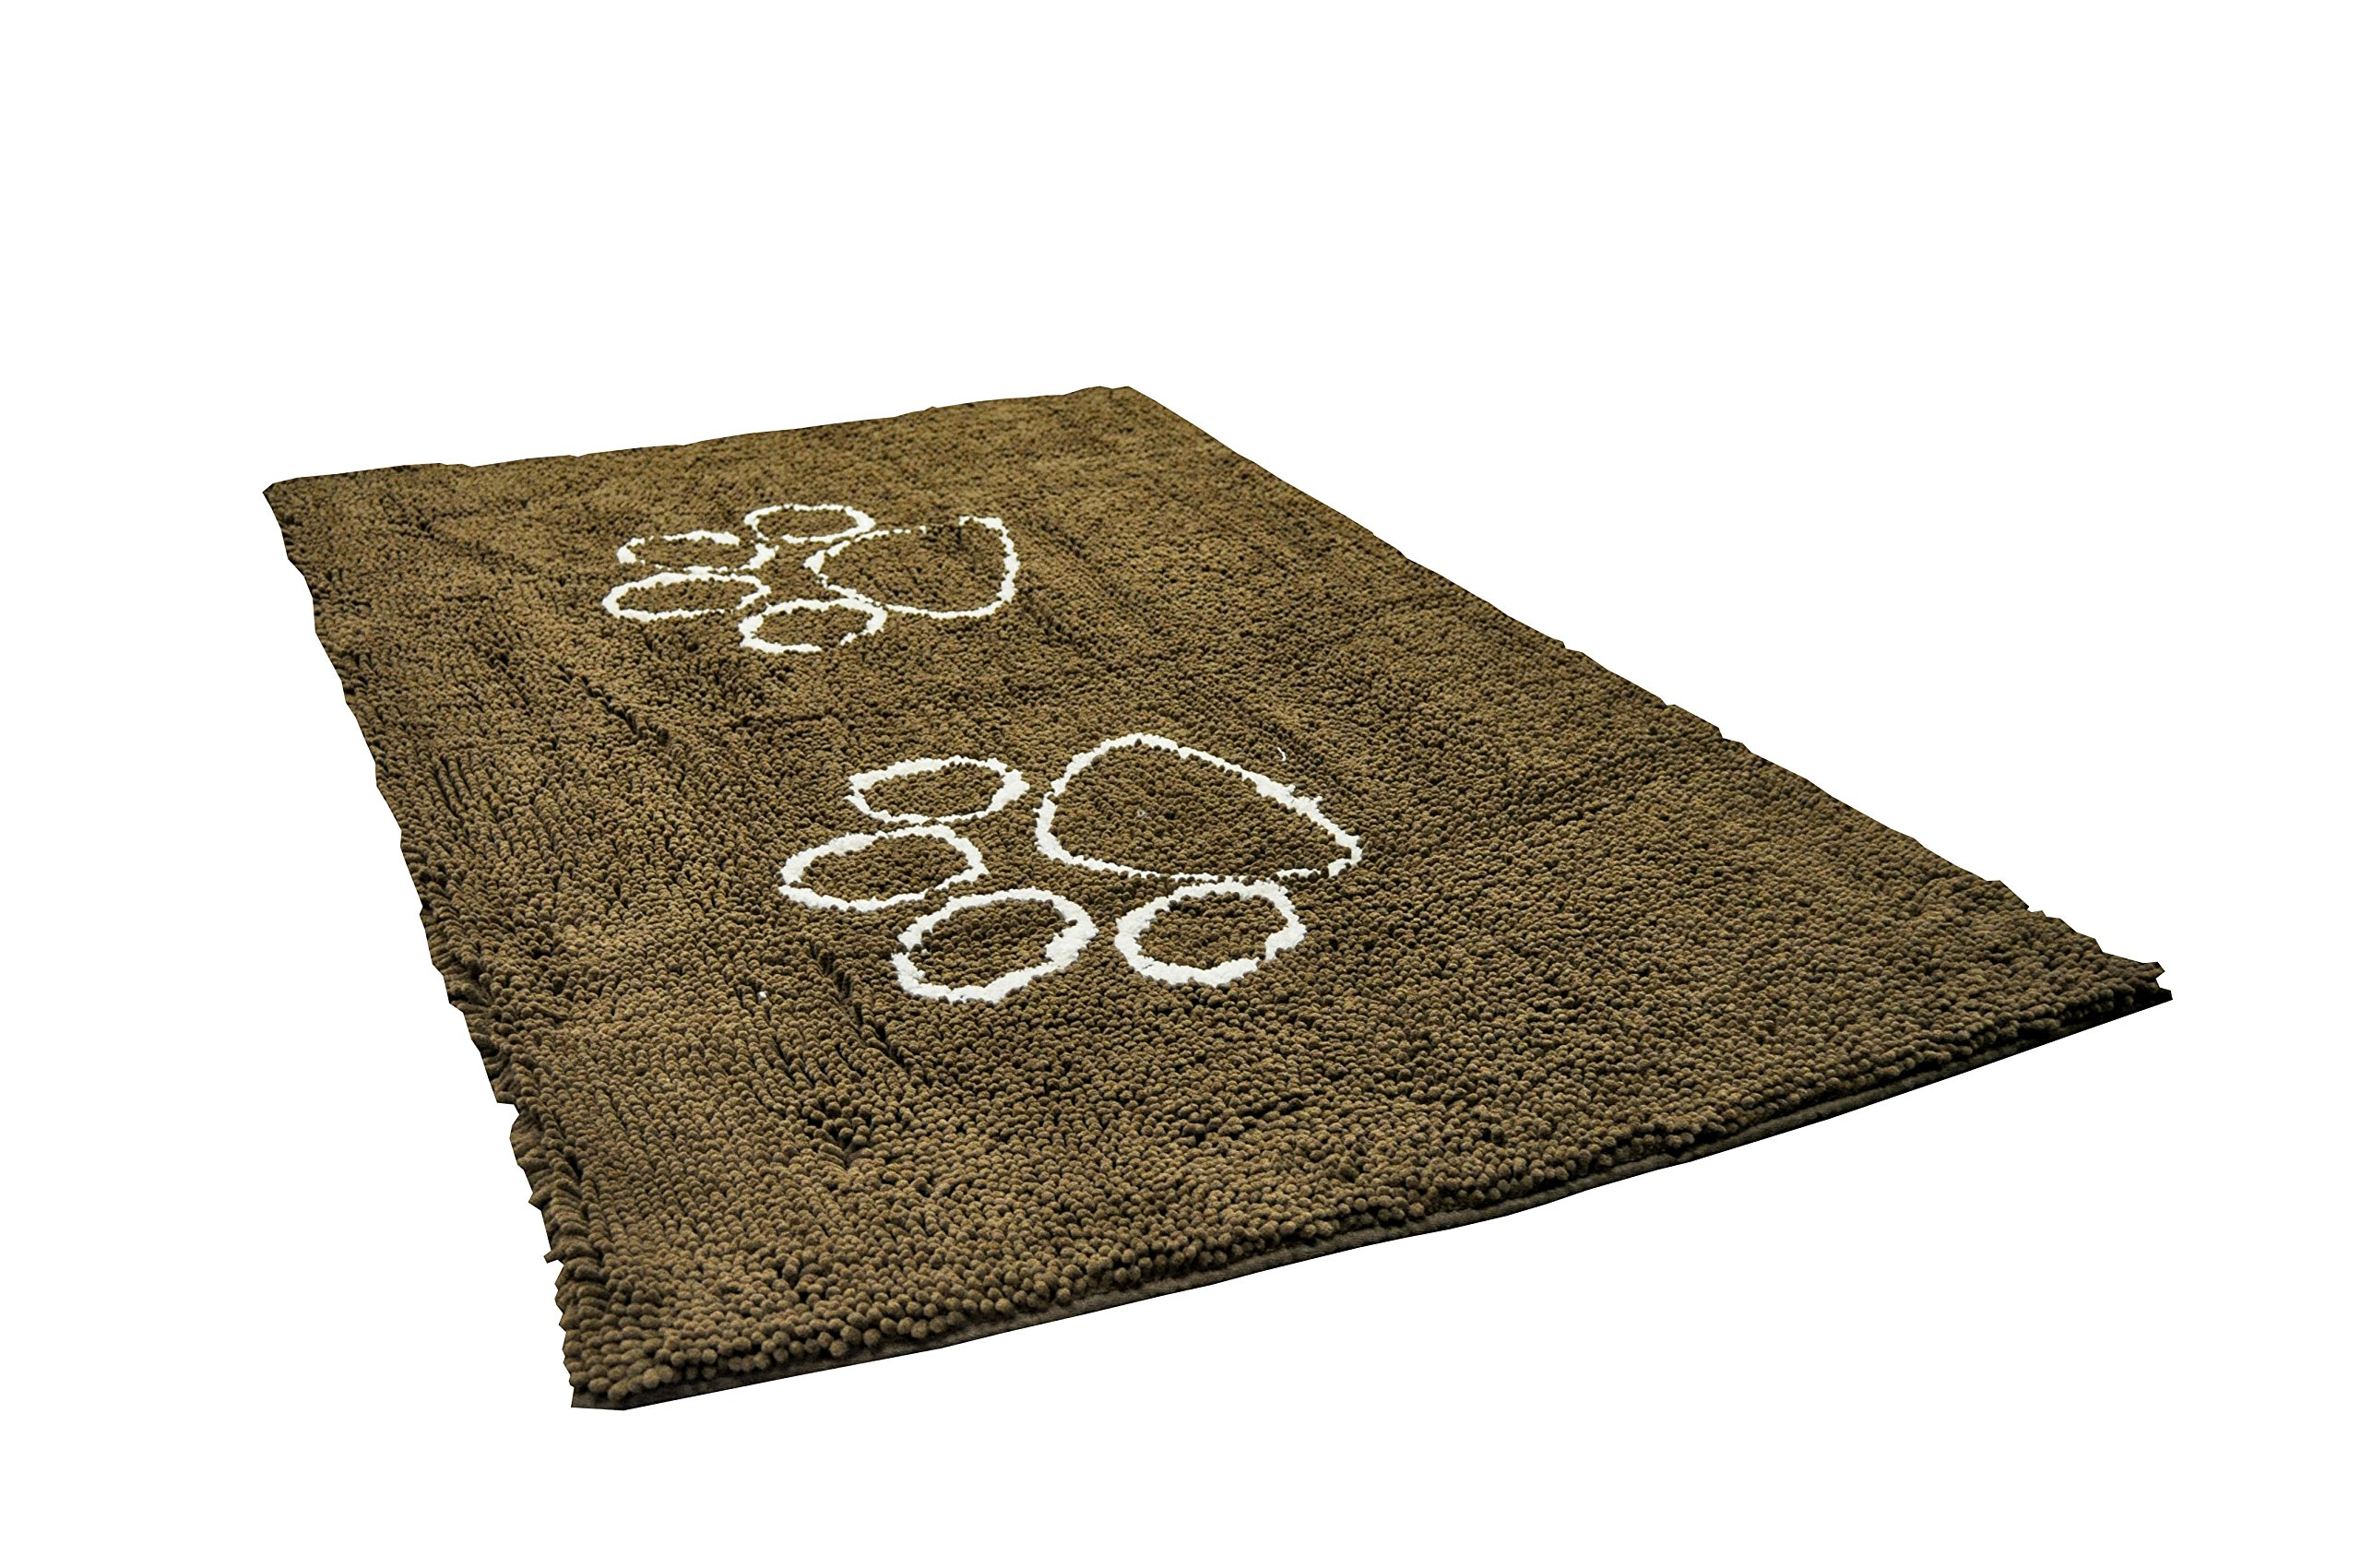 My Doggy Place - Ultra Absorbent Microfiber Dog Door Mat, Durable, Quick Drying, Washable, Prevent Mud Dirt, Keep Your House Clean (Brown w/ Paw Print, Runner) - 60 x 36 inch by My Doggy Place (Image #3)